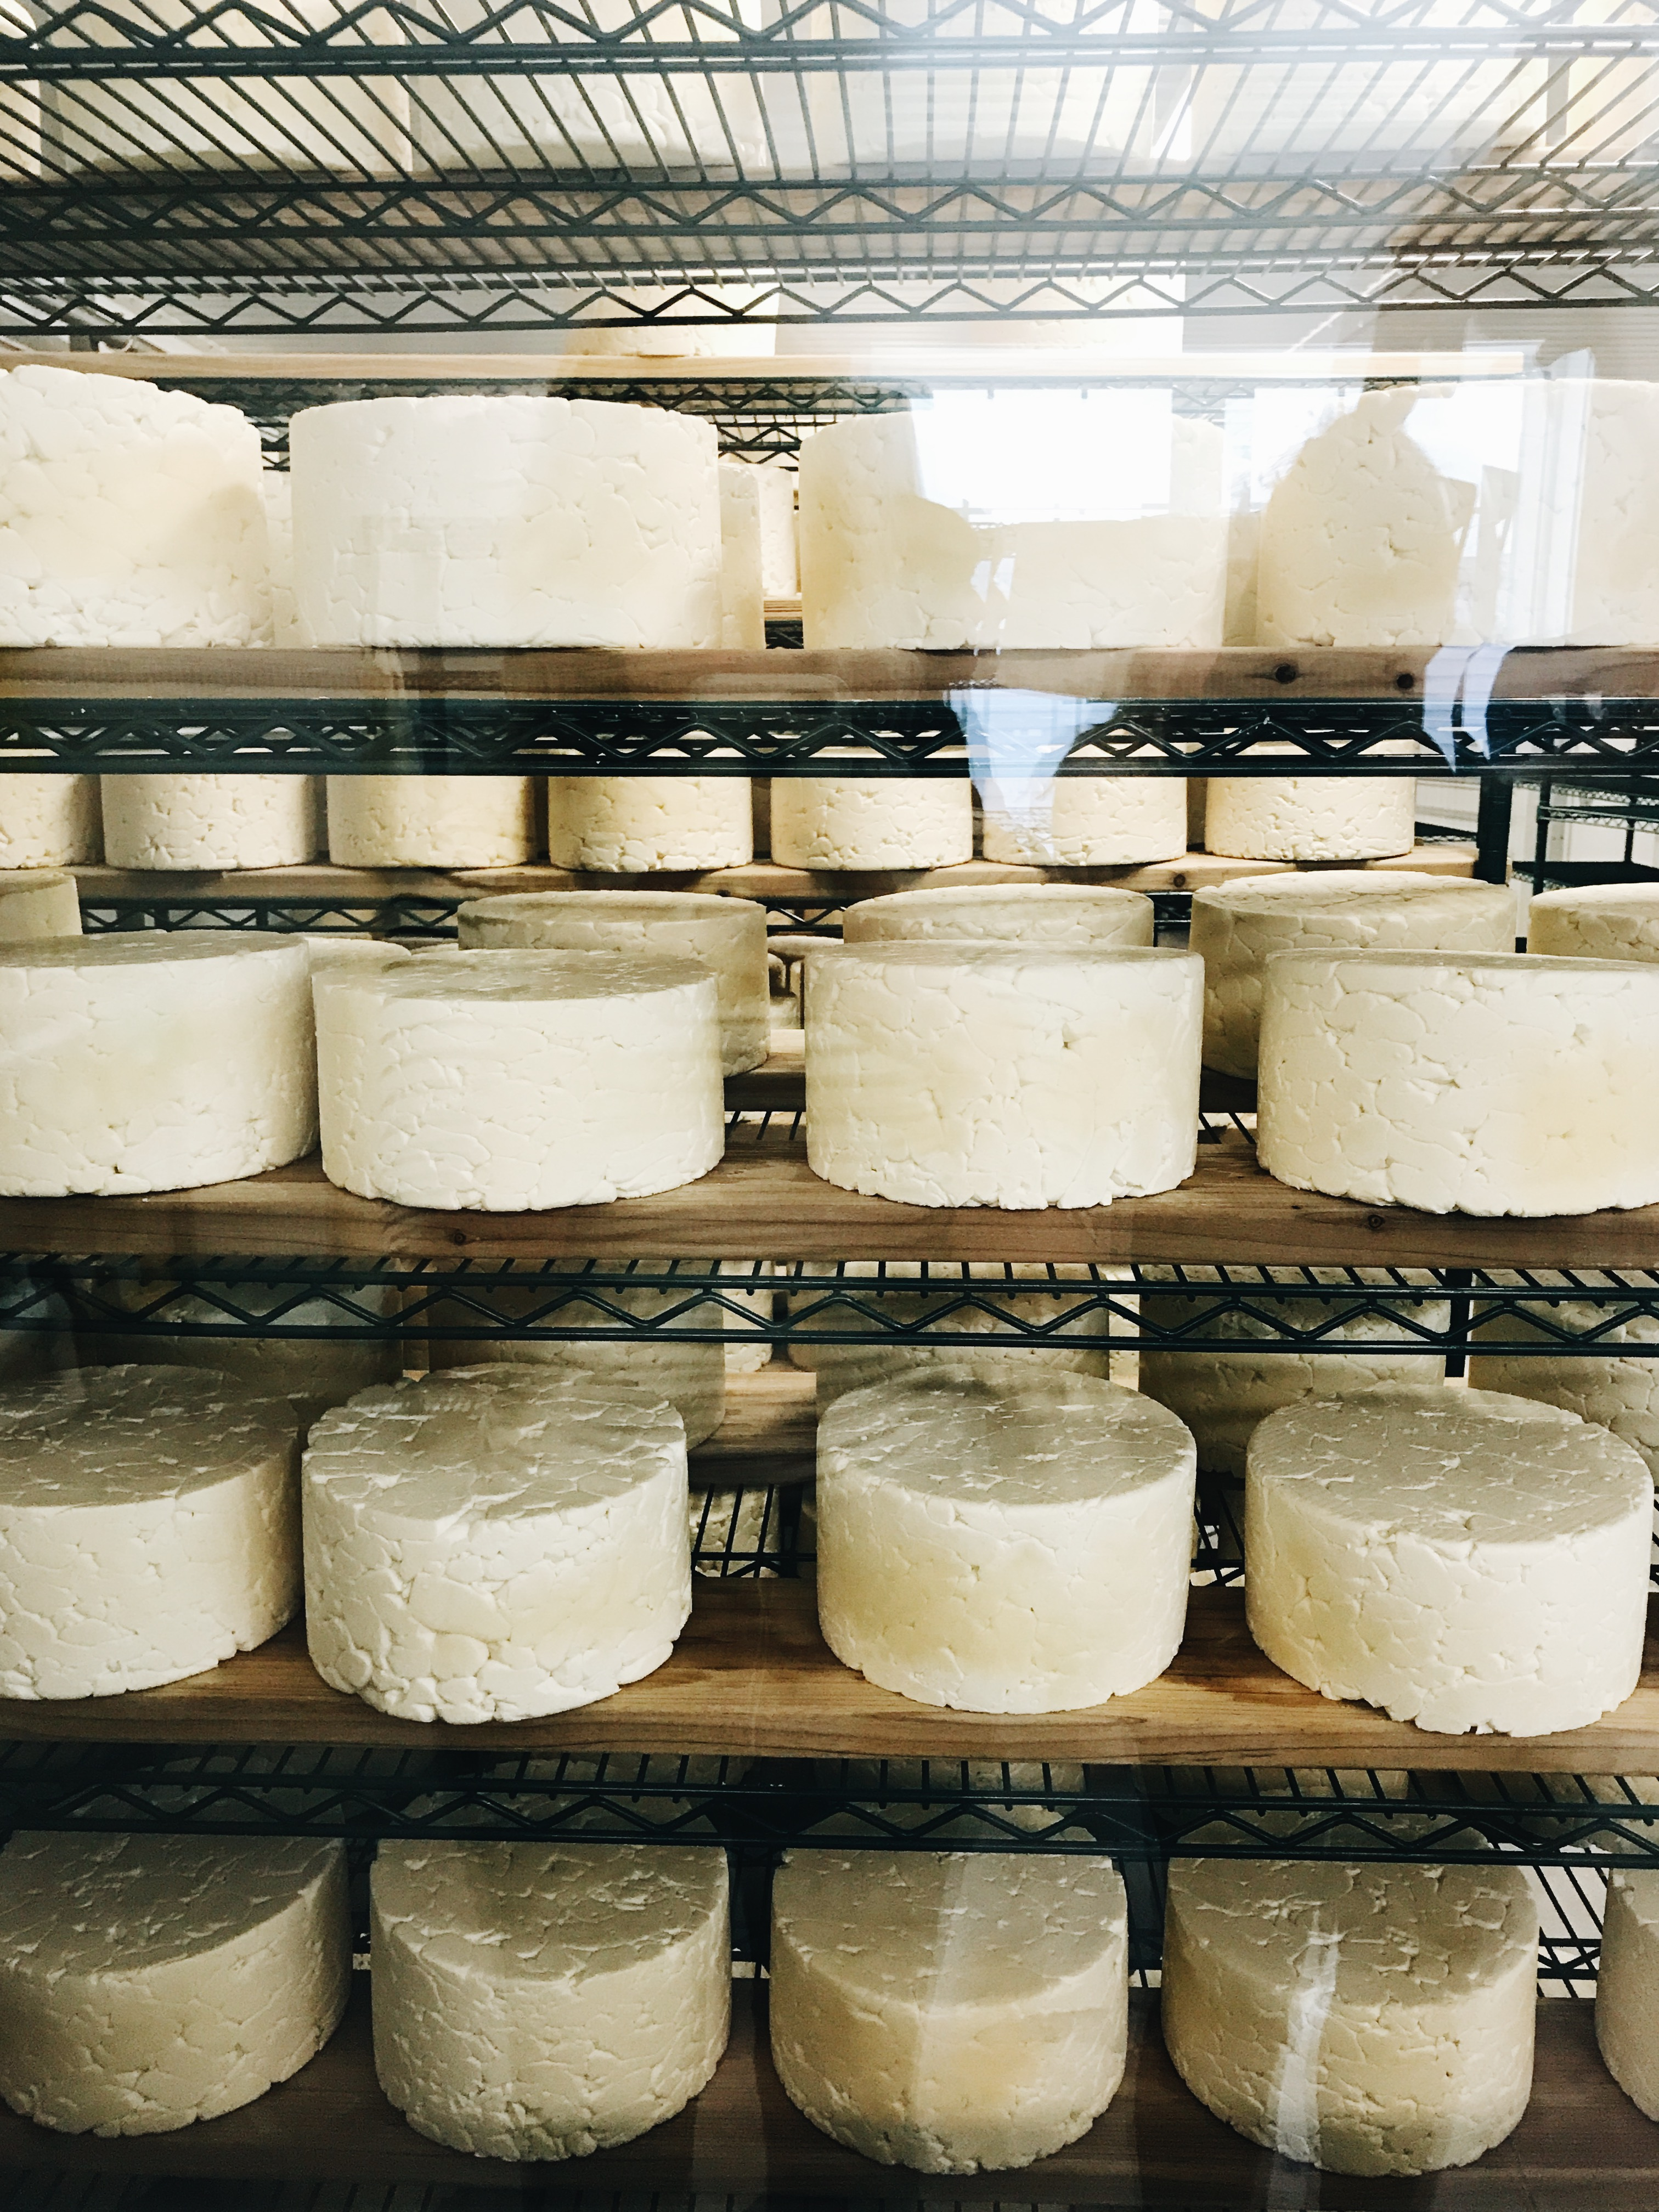 Cheese at Roelli in Wisconsin